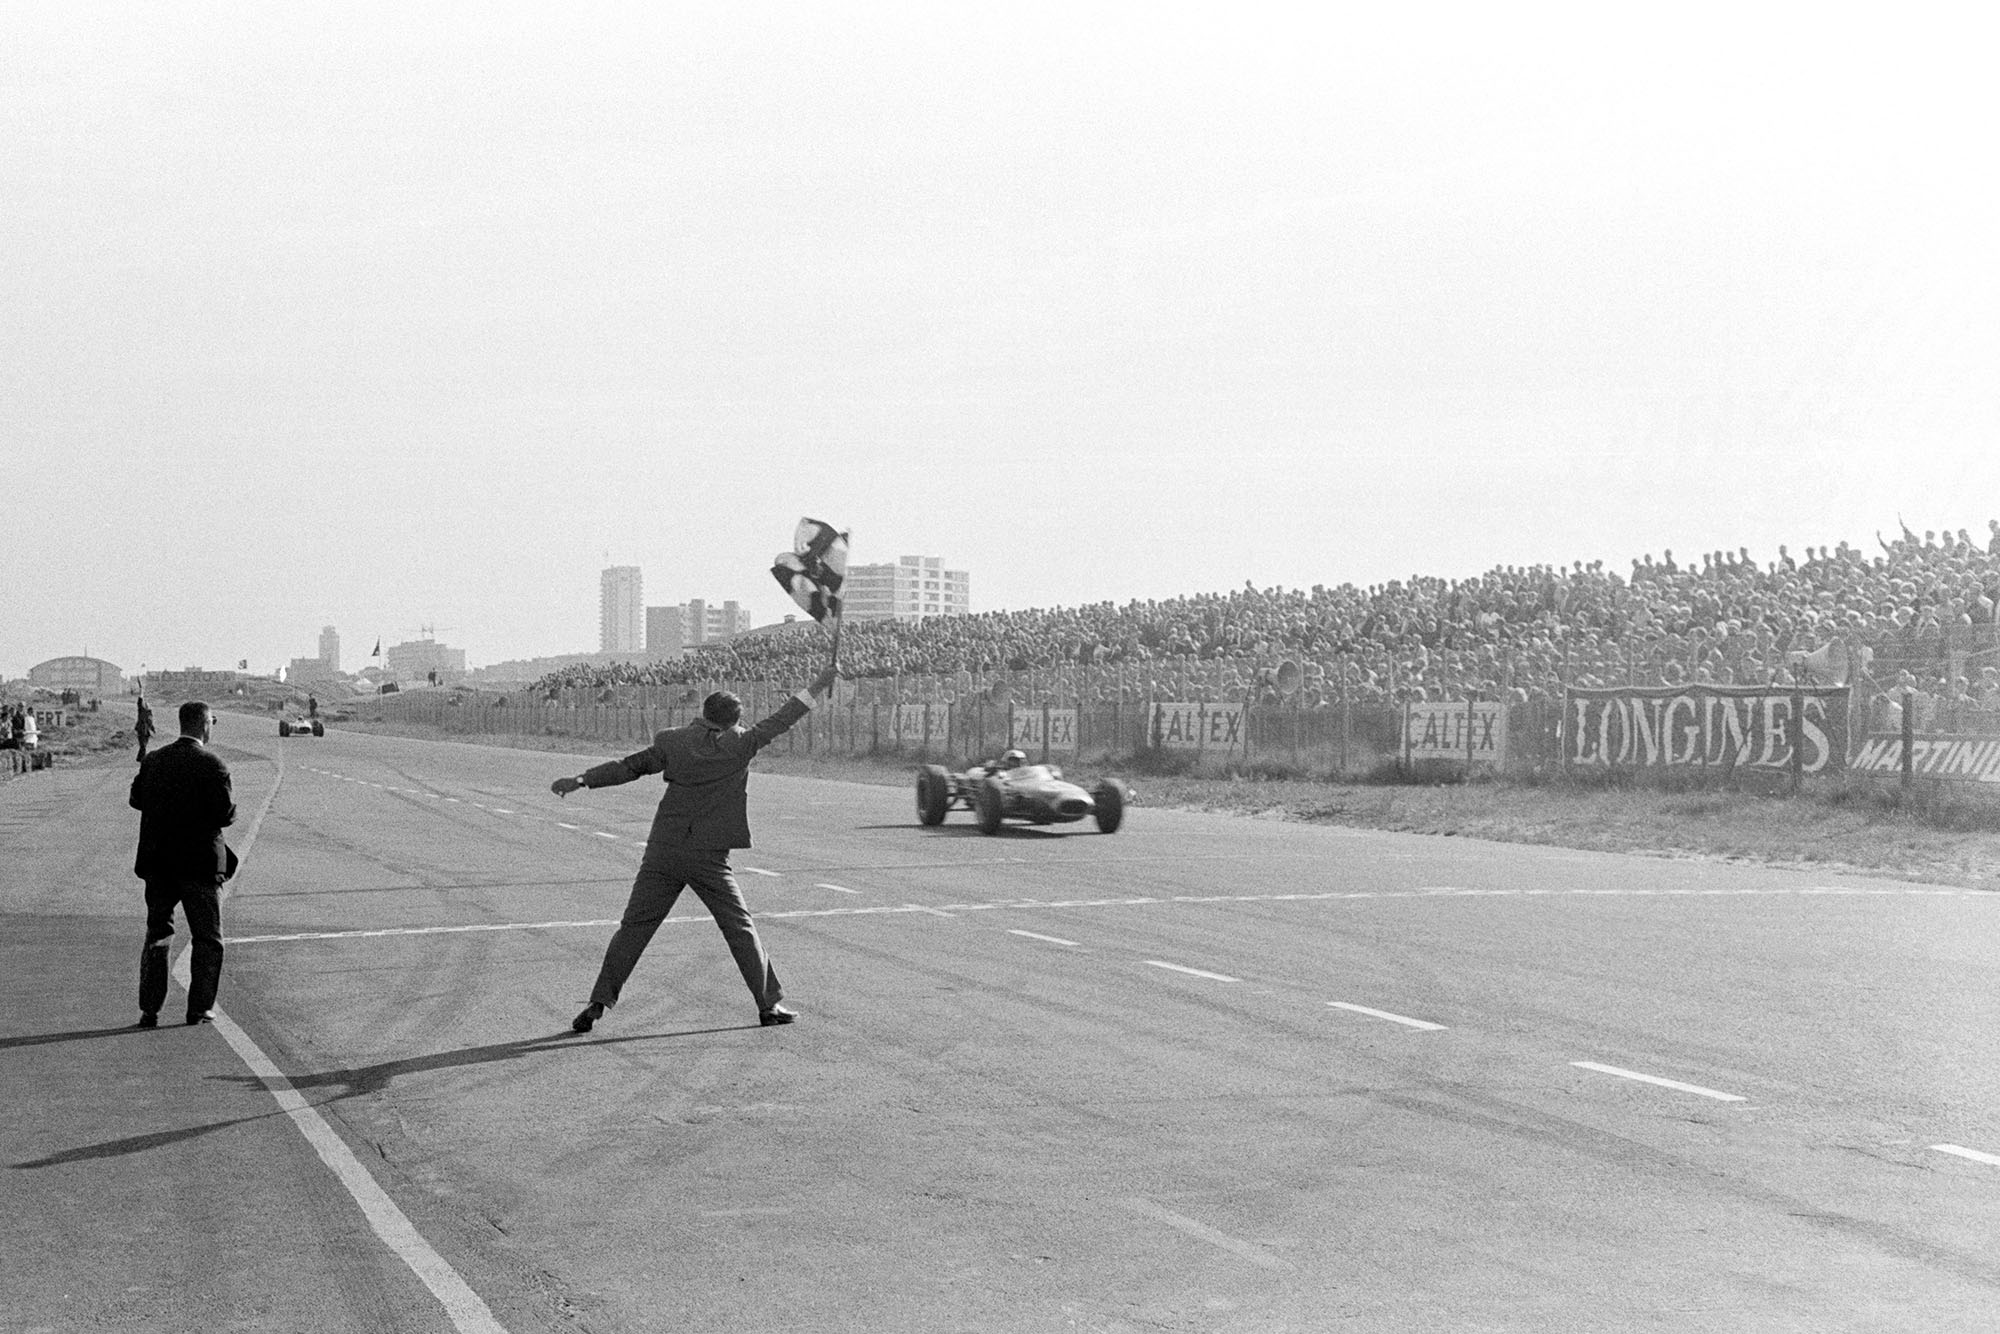 Race winner Jack Brabham (AUS) Brabham BT19 takes the chequered flag to score his hat-trick of consecutive victories.